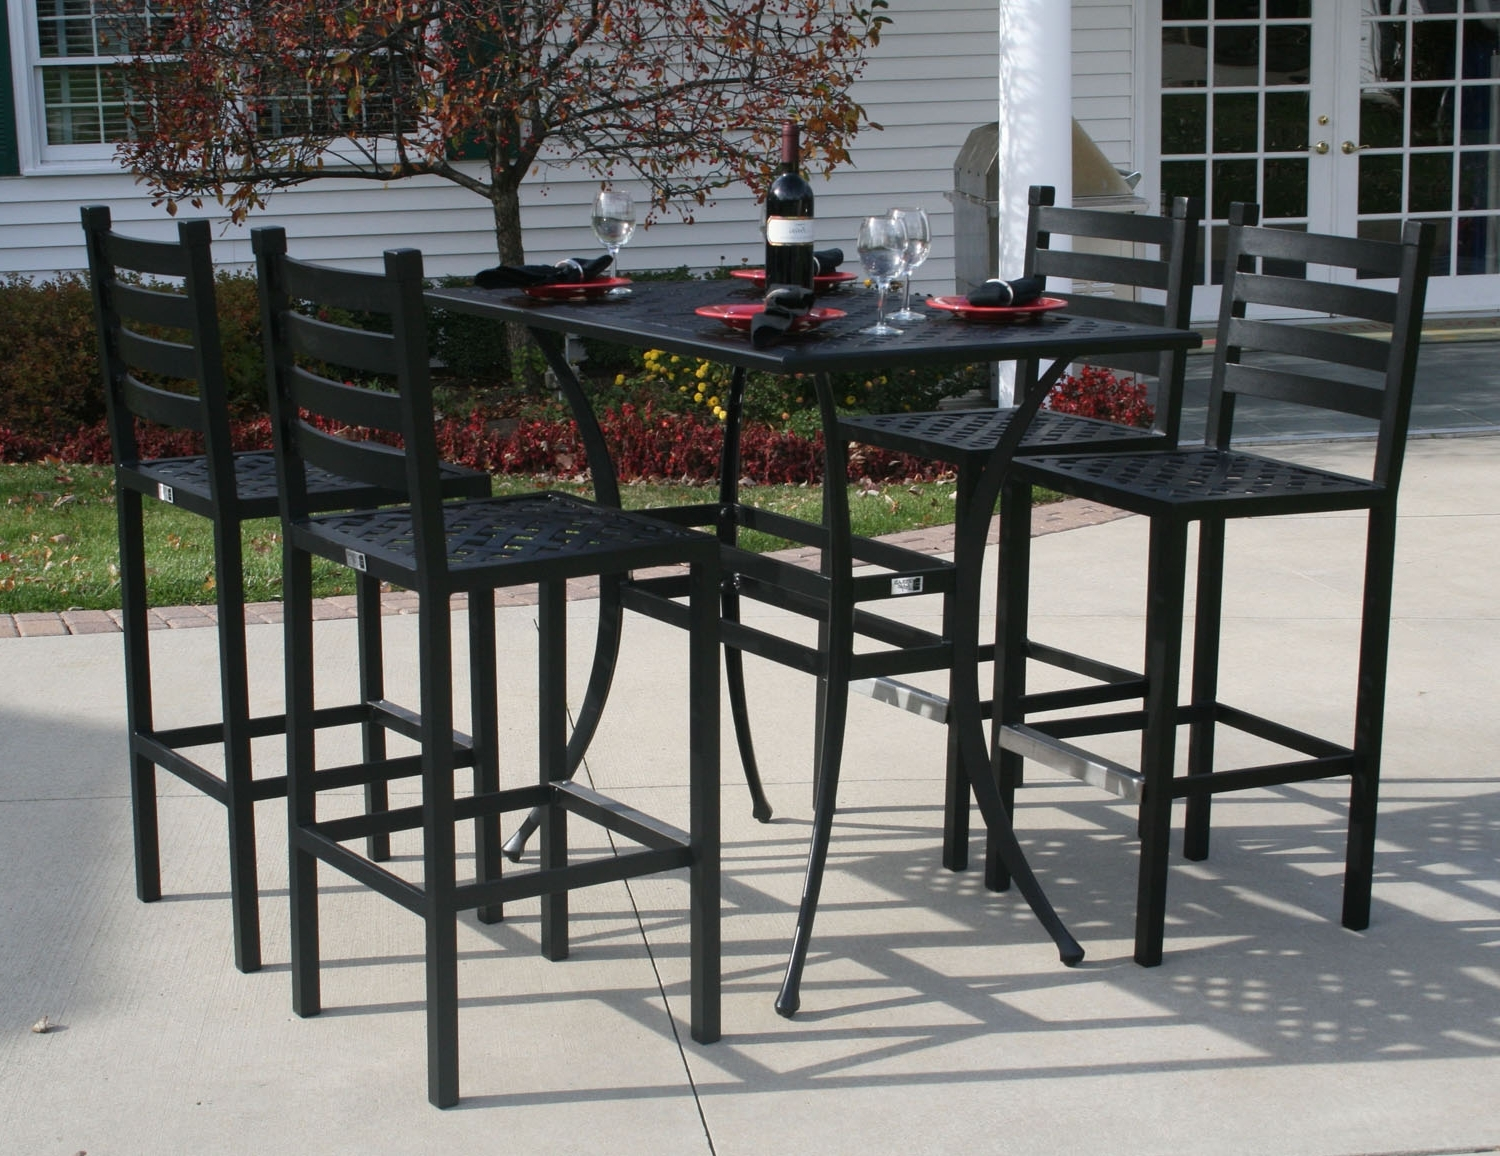 Patio Umbrellas For Bar Height Tables Regarding Favorite Ansley Luxury 4 Person All Welded Cast Aluminum Patio Furniture Bar (View 13 of 20)